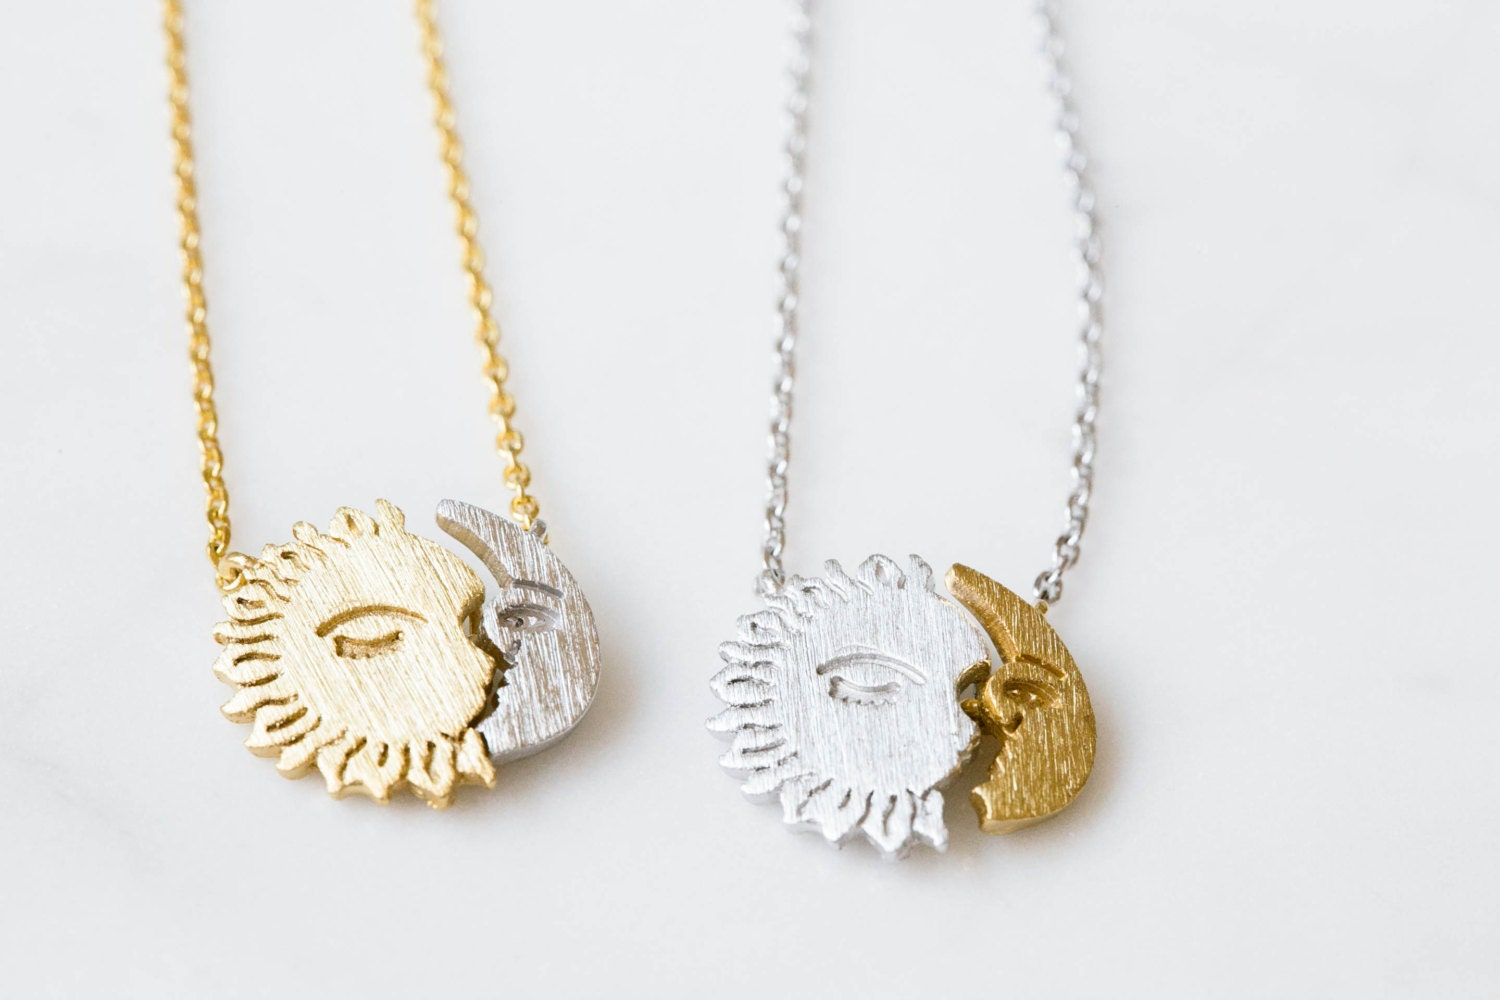 Twitches necklace on the hunt half sun moon necklace2 pendant necklacesun moon face necklacewomens mozeypictures Gallery